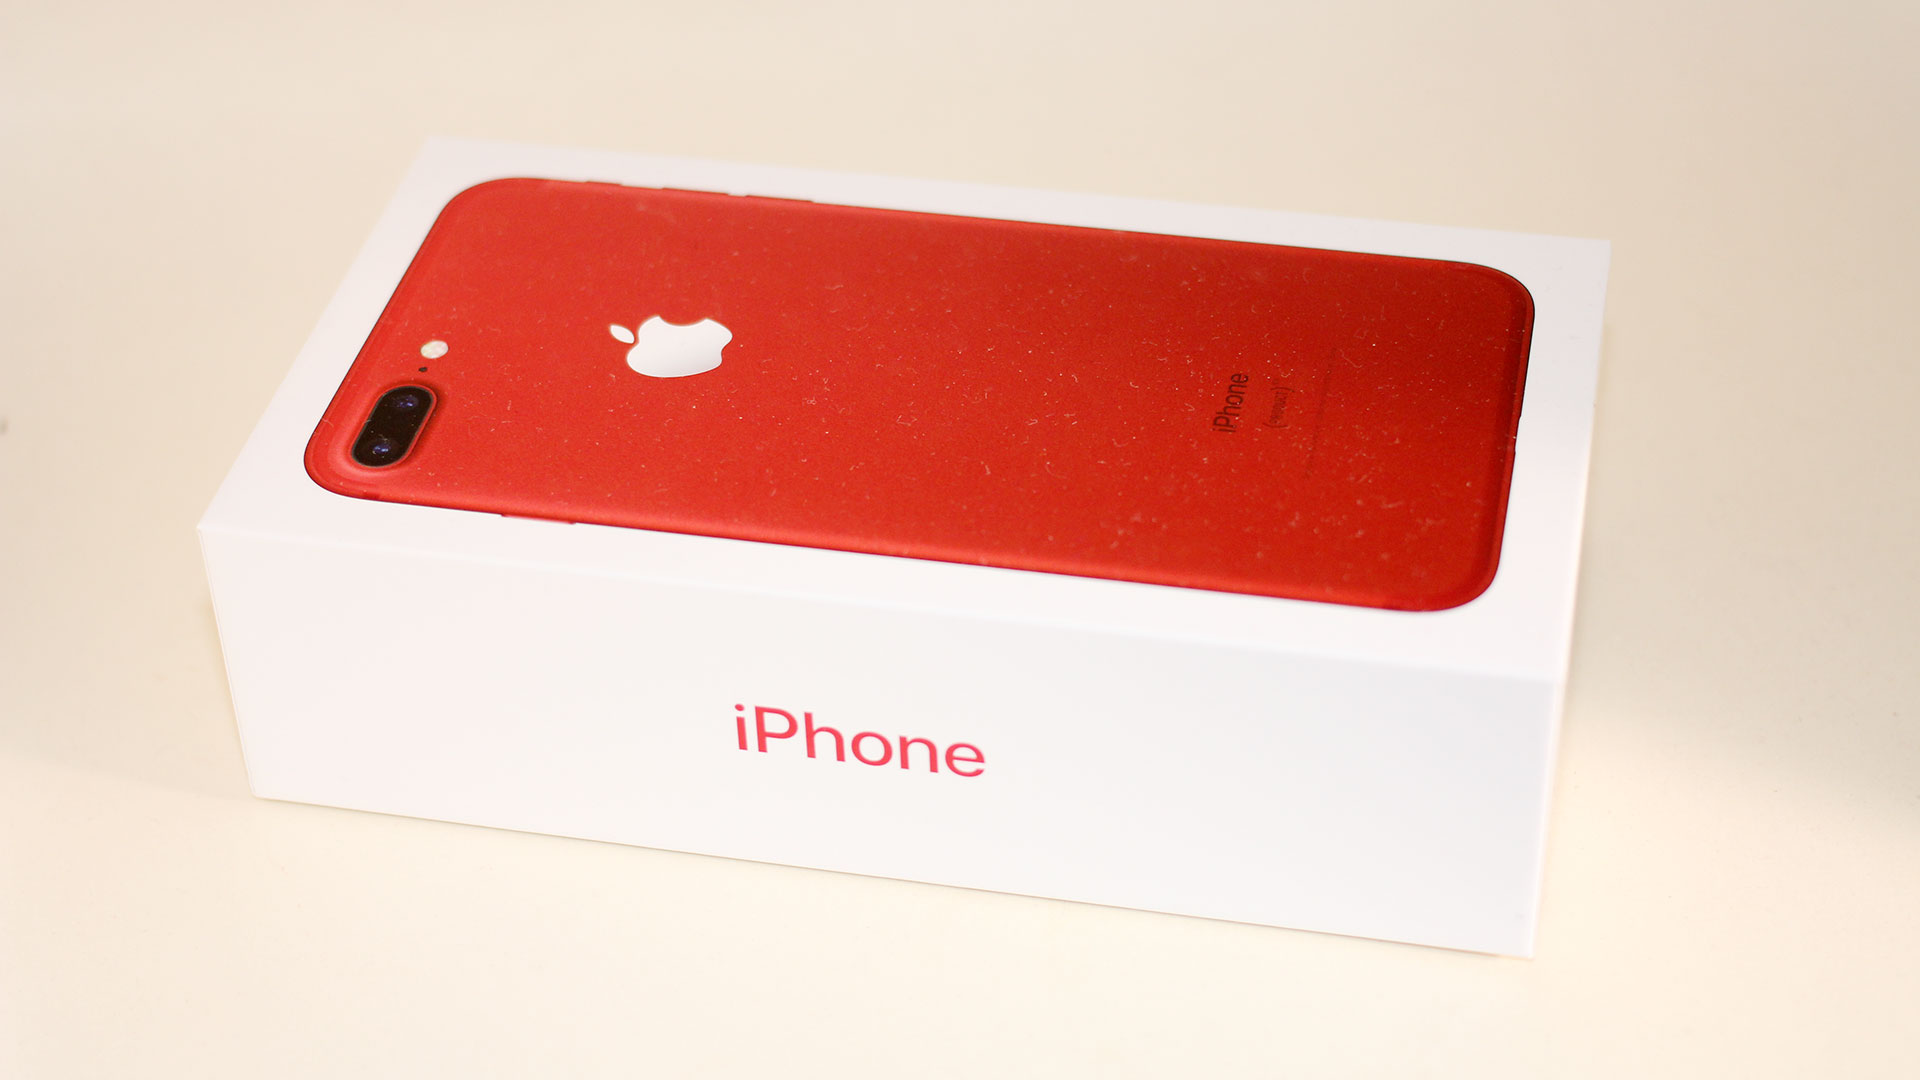 iPhone-7-Plus-Red-Packaging